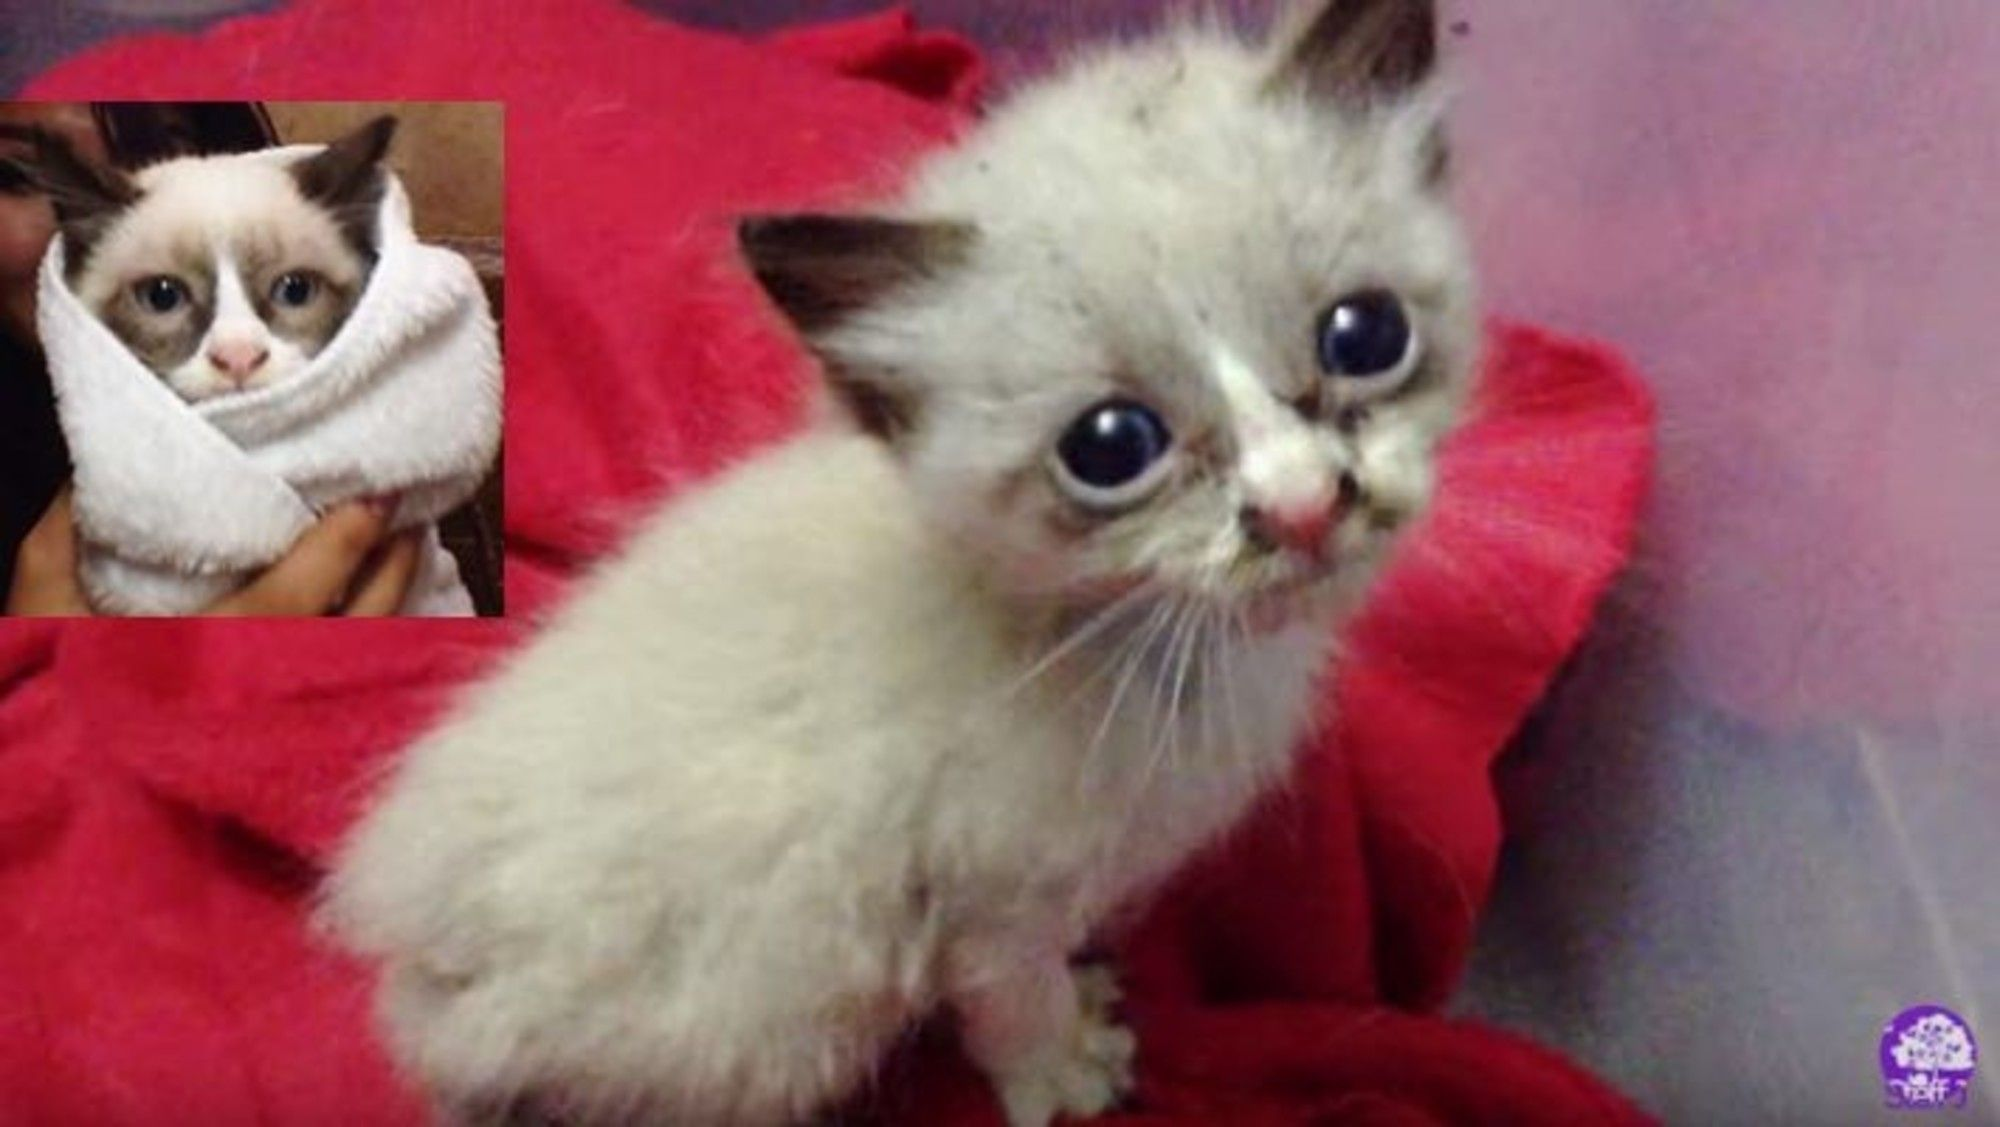 A tiny kitten was wandering outside on the street meowing